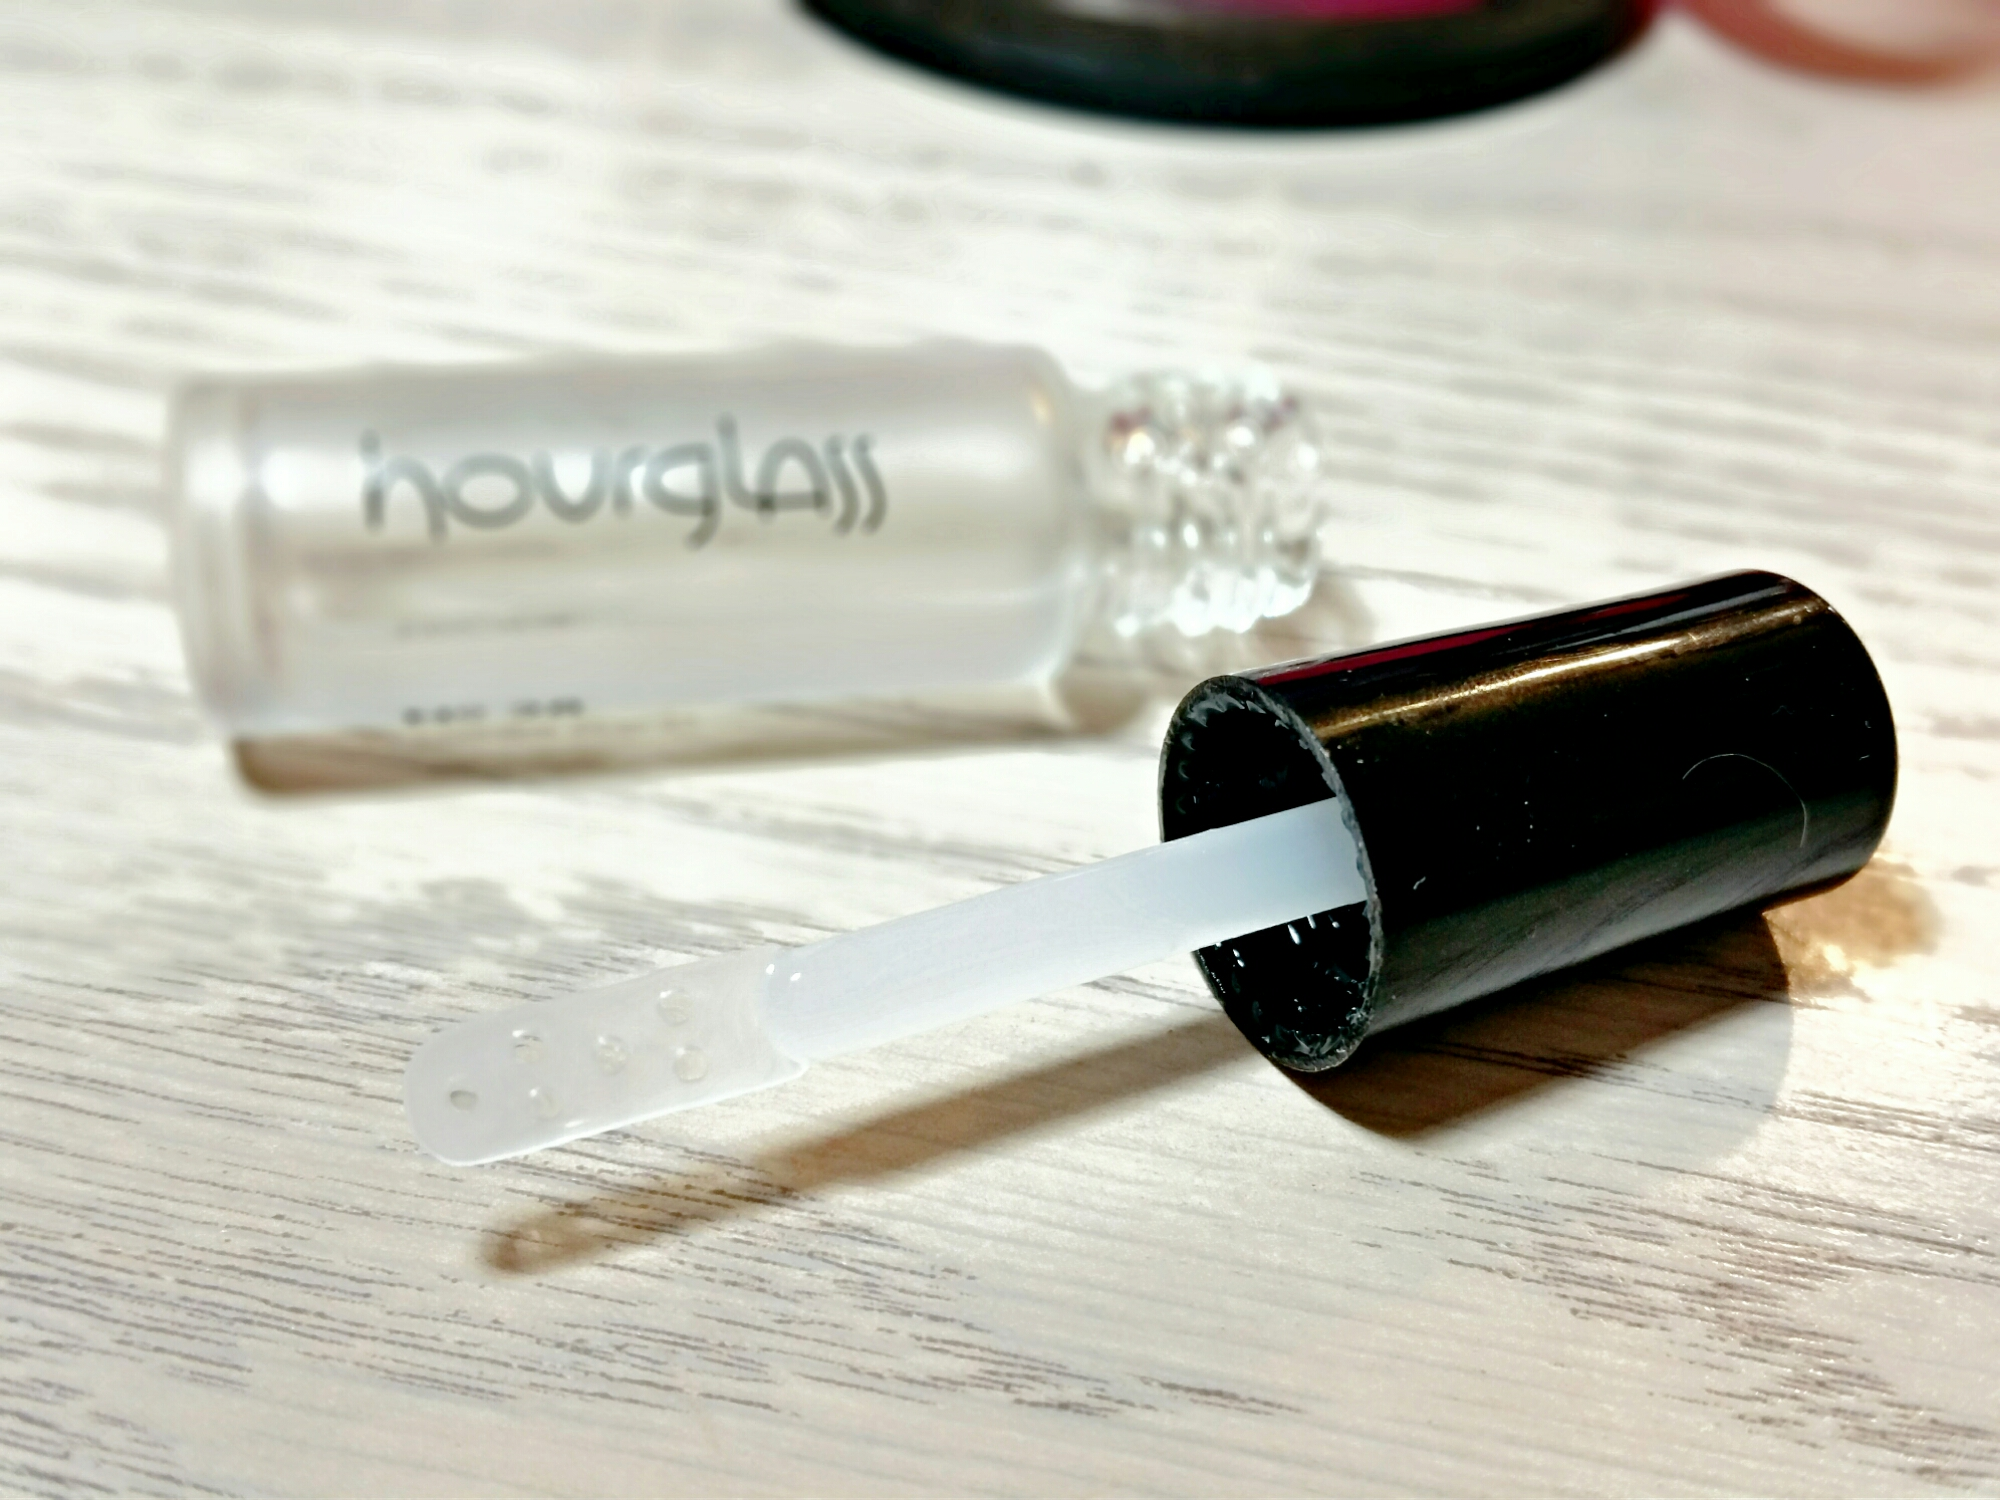 N° 28 Primer Serum by Hourglass #9